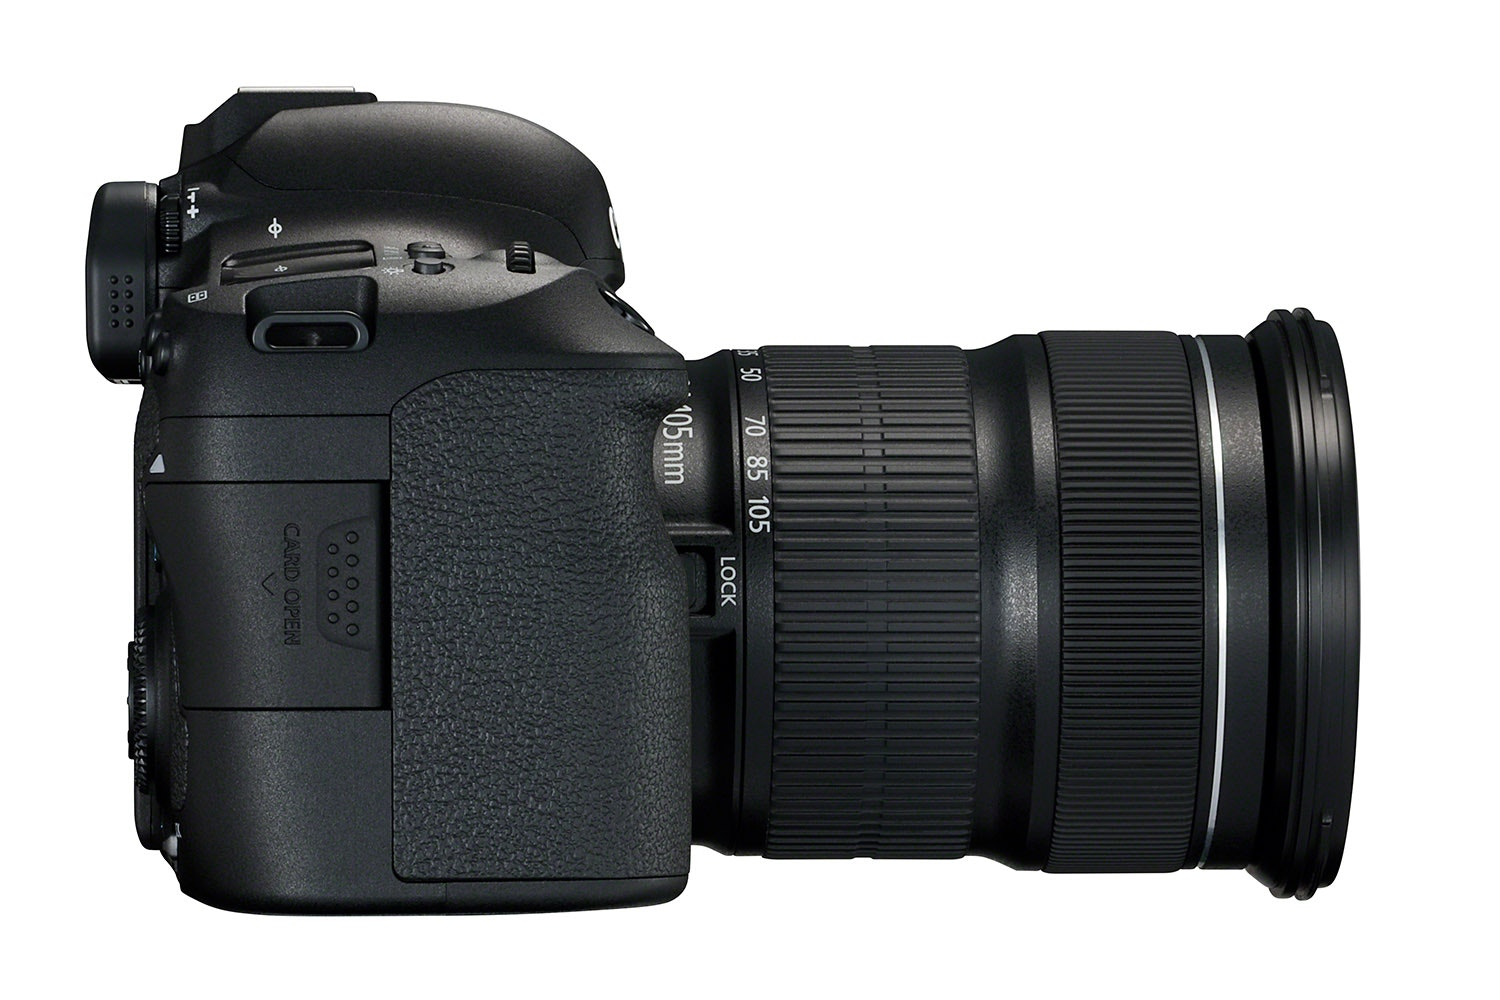 Canon EOS 6D Mk II & 24-105mm IS STM Lens